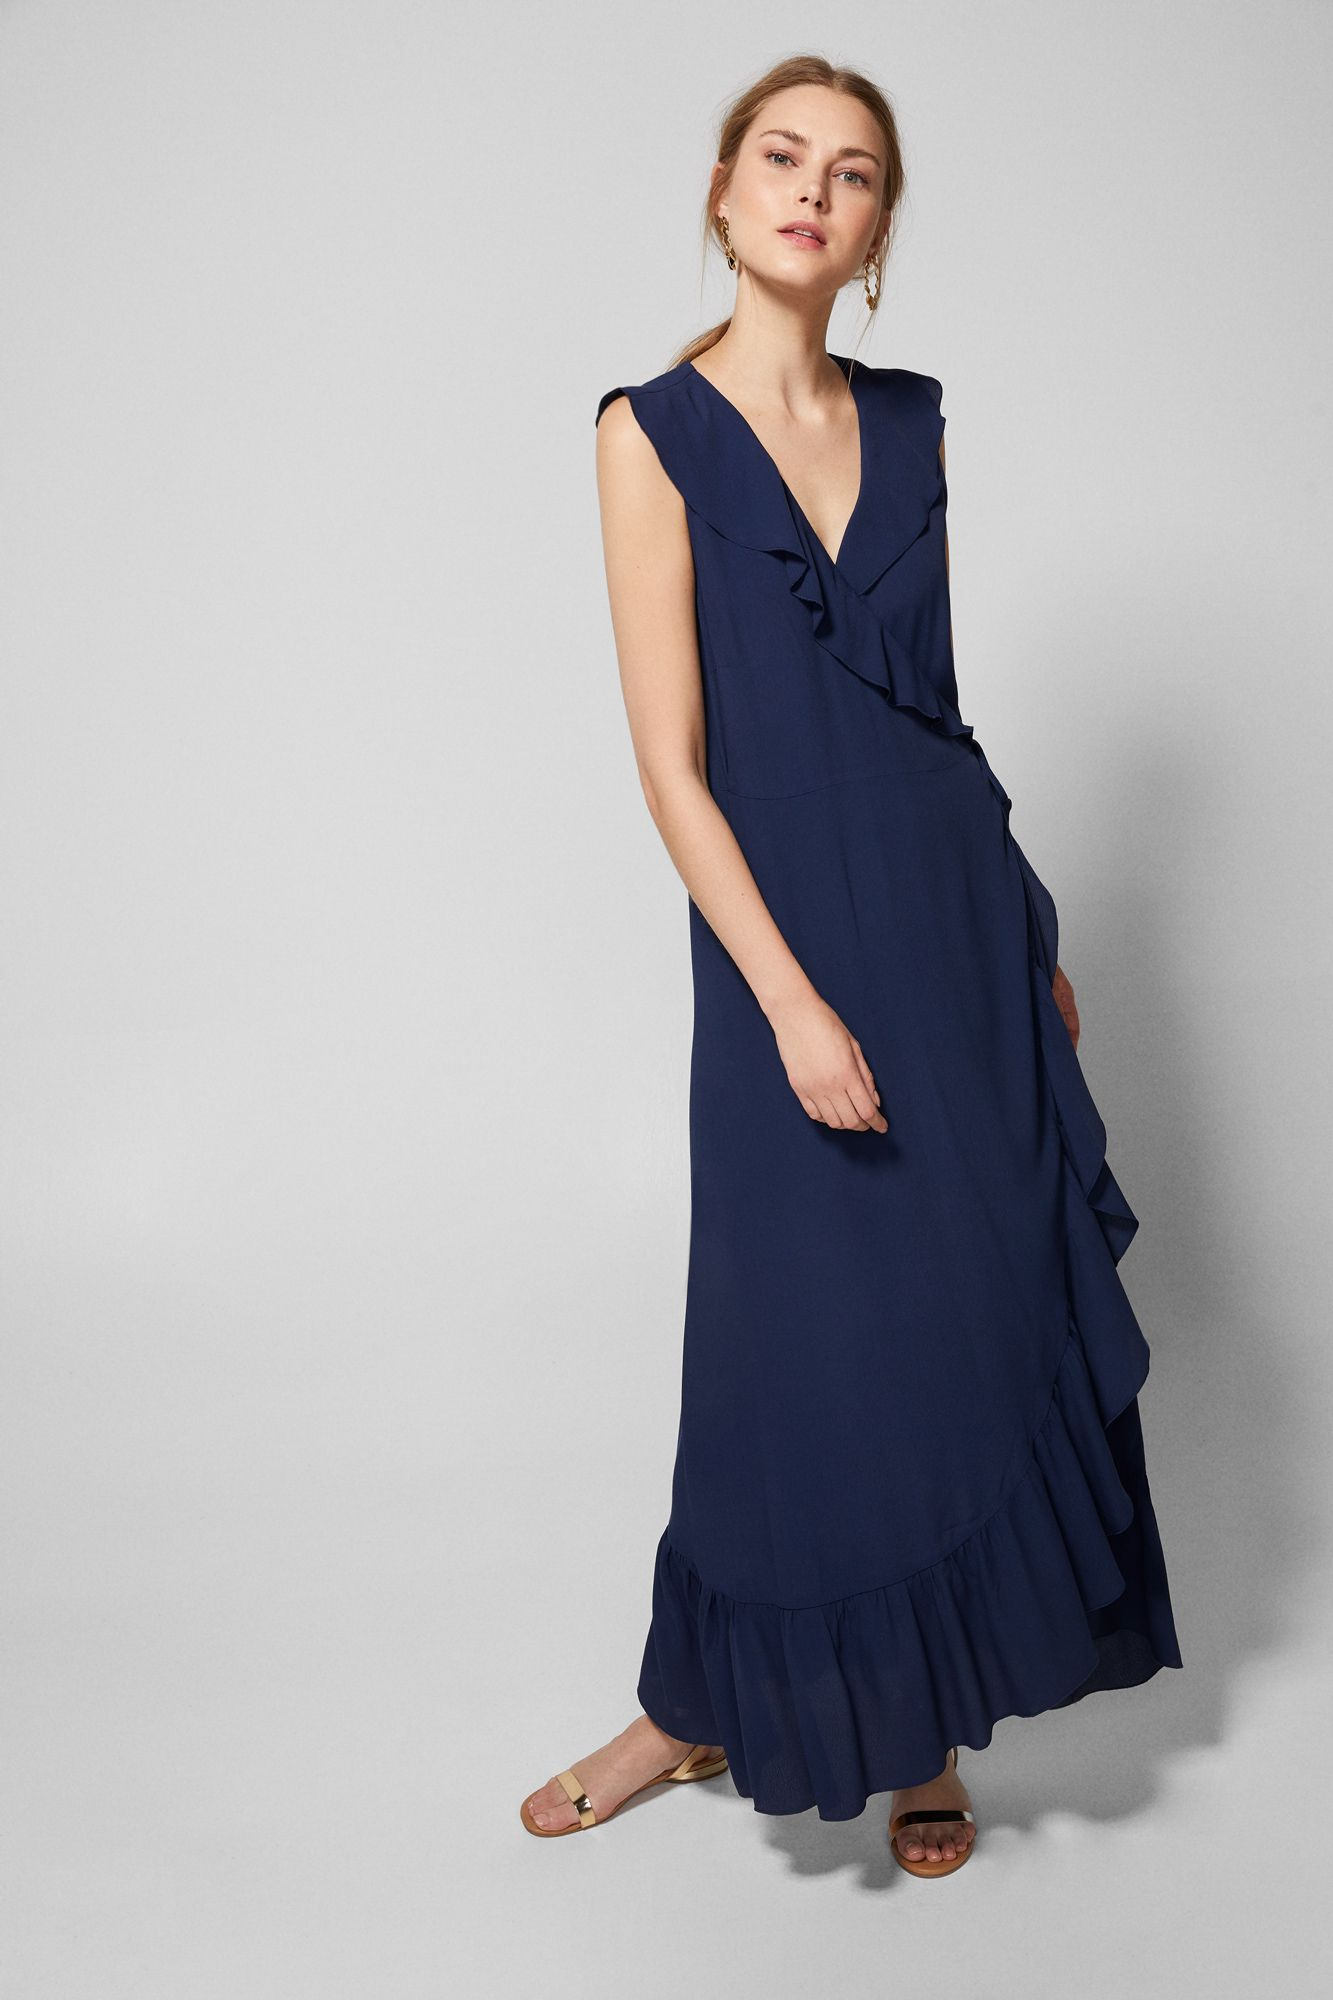 Long dress with a wrap neckline and ruffle detail on the neckline